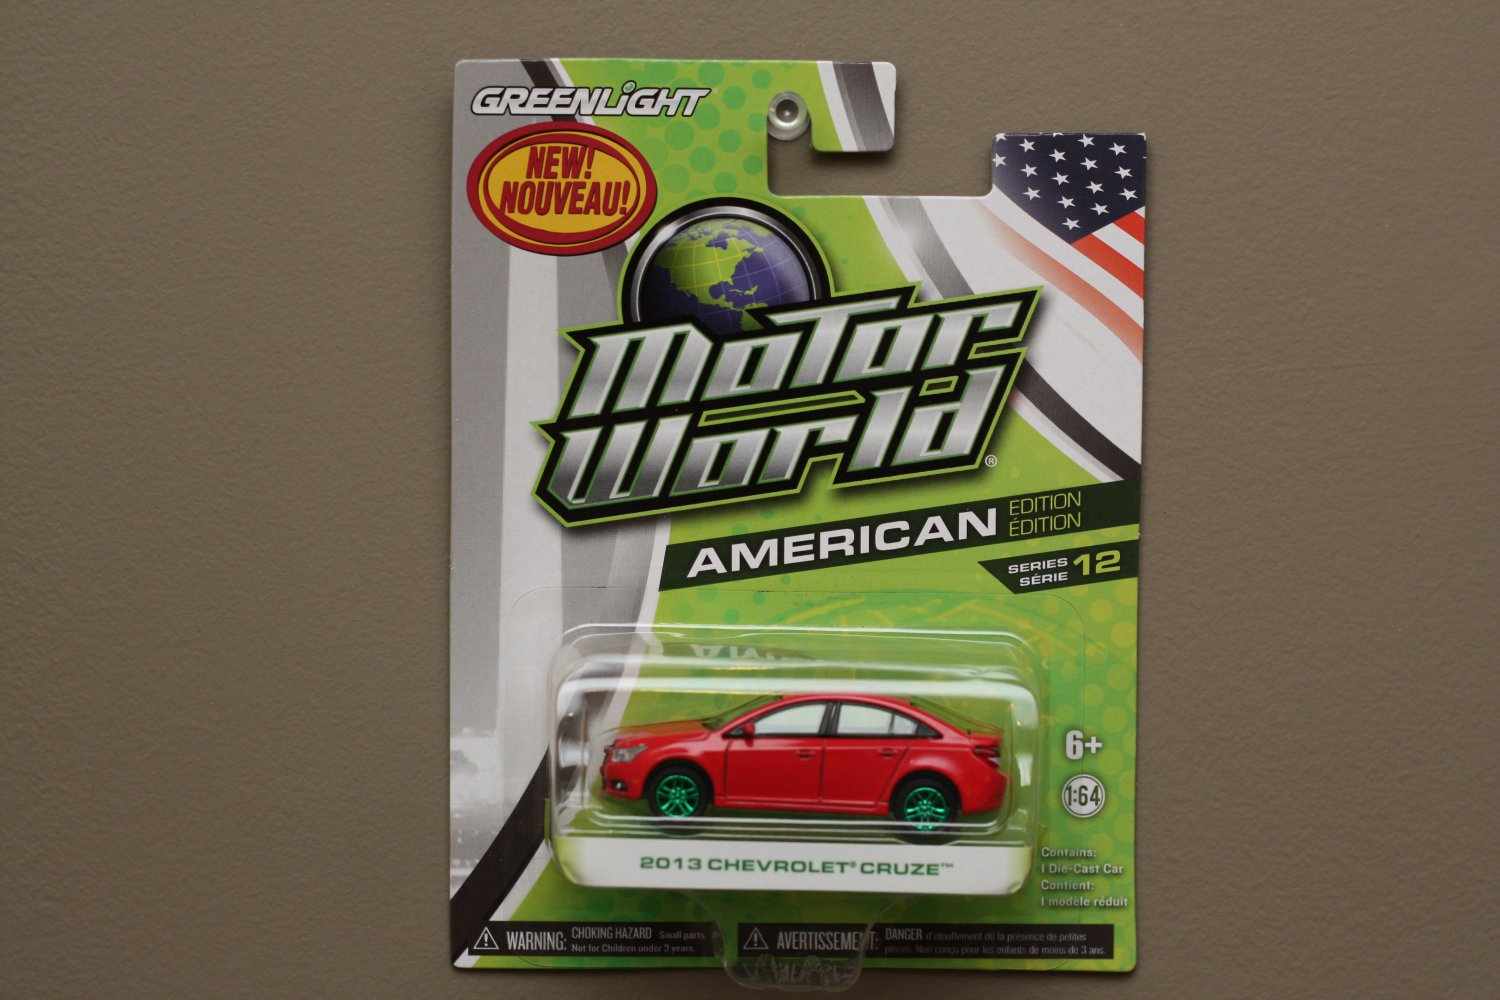 Greenlight Motor World Series 12 American Edition 2013 Chevrolet Cruze (red) (Green Machine)